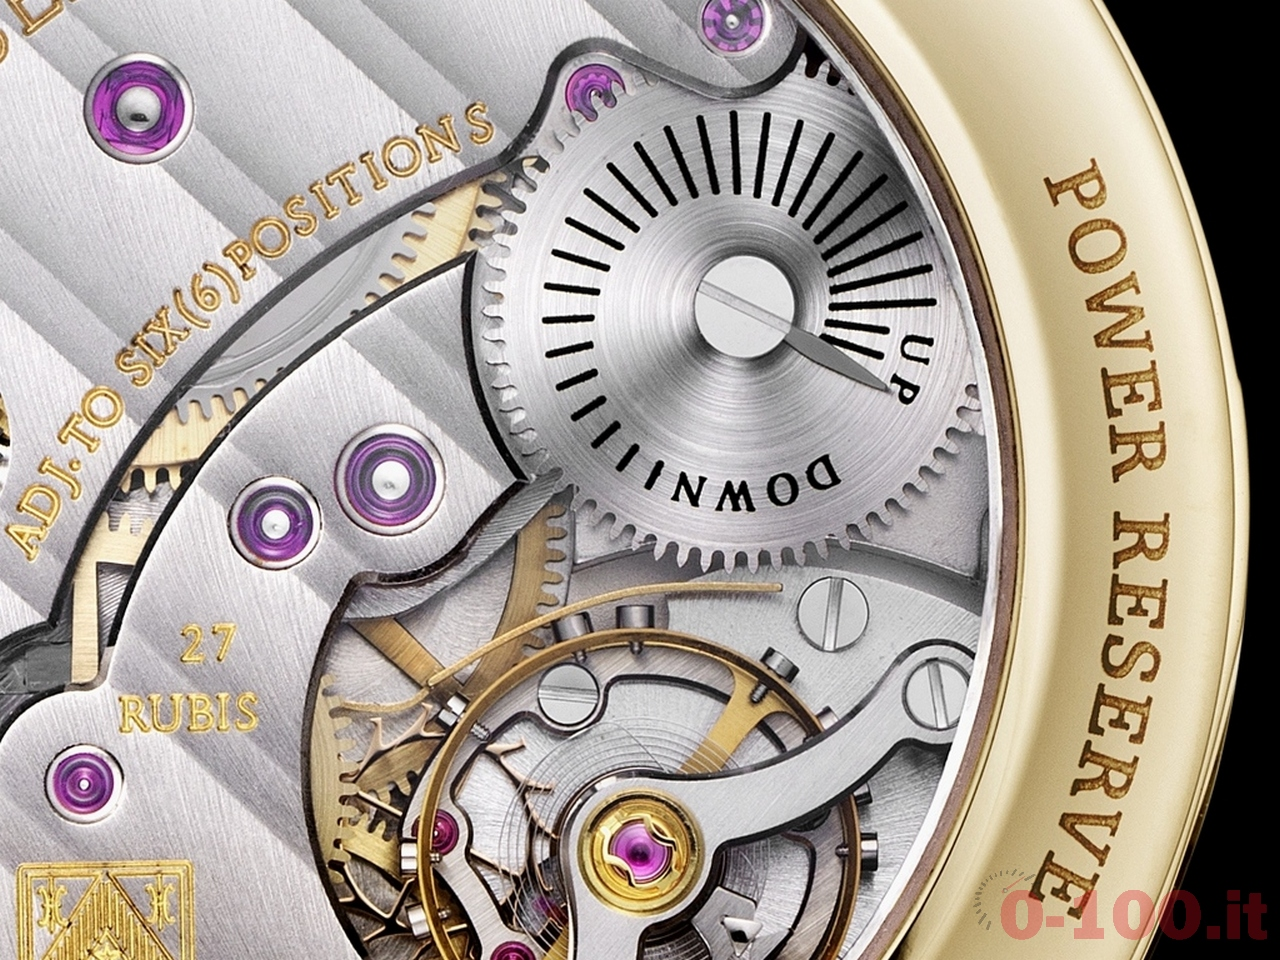 h-moser-cie-endeavour-small-seconds-bryan-ferry-limited-edition-ref-1321-0116_0-1006